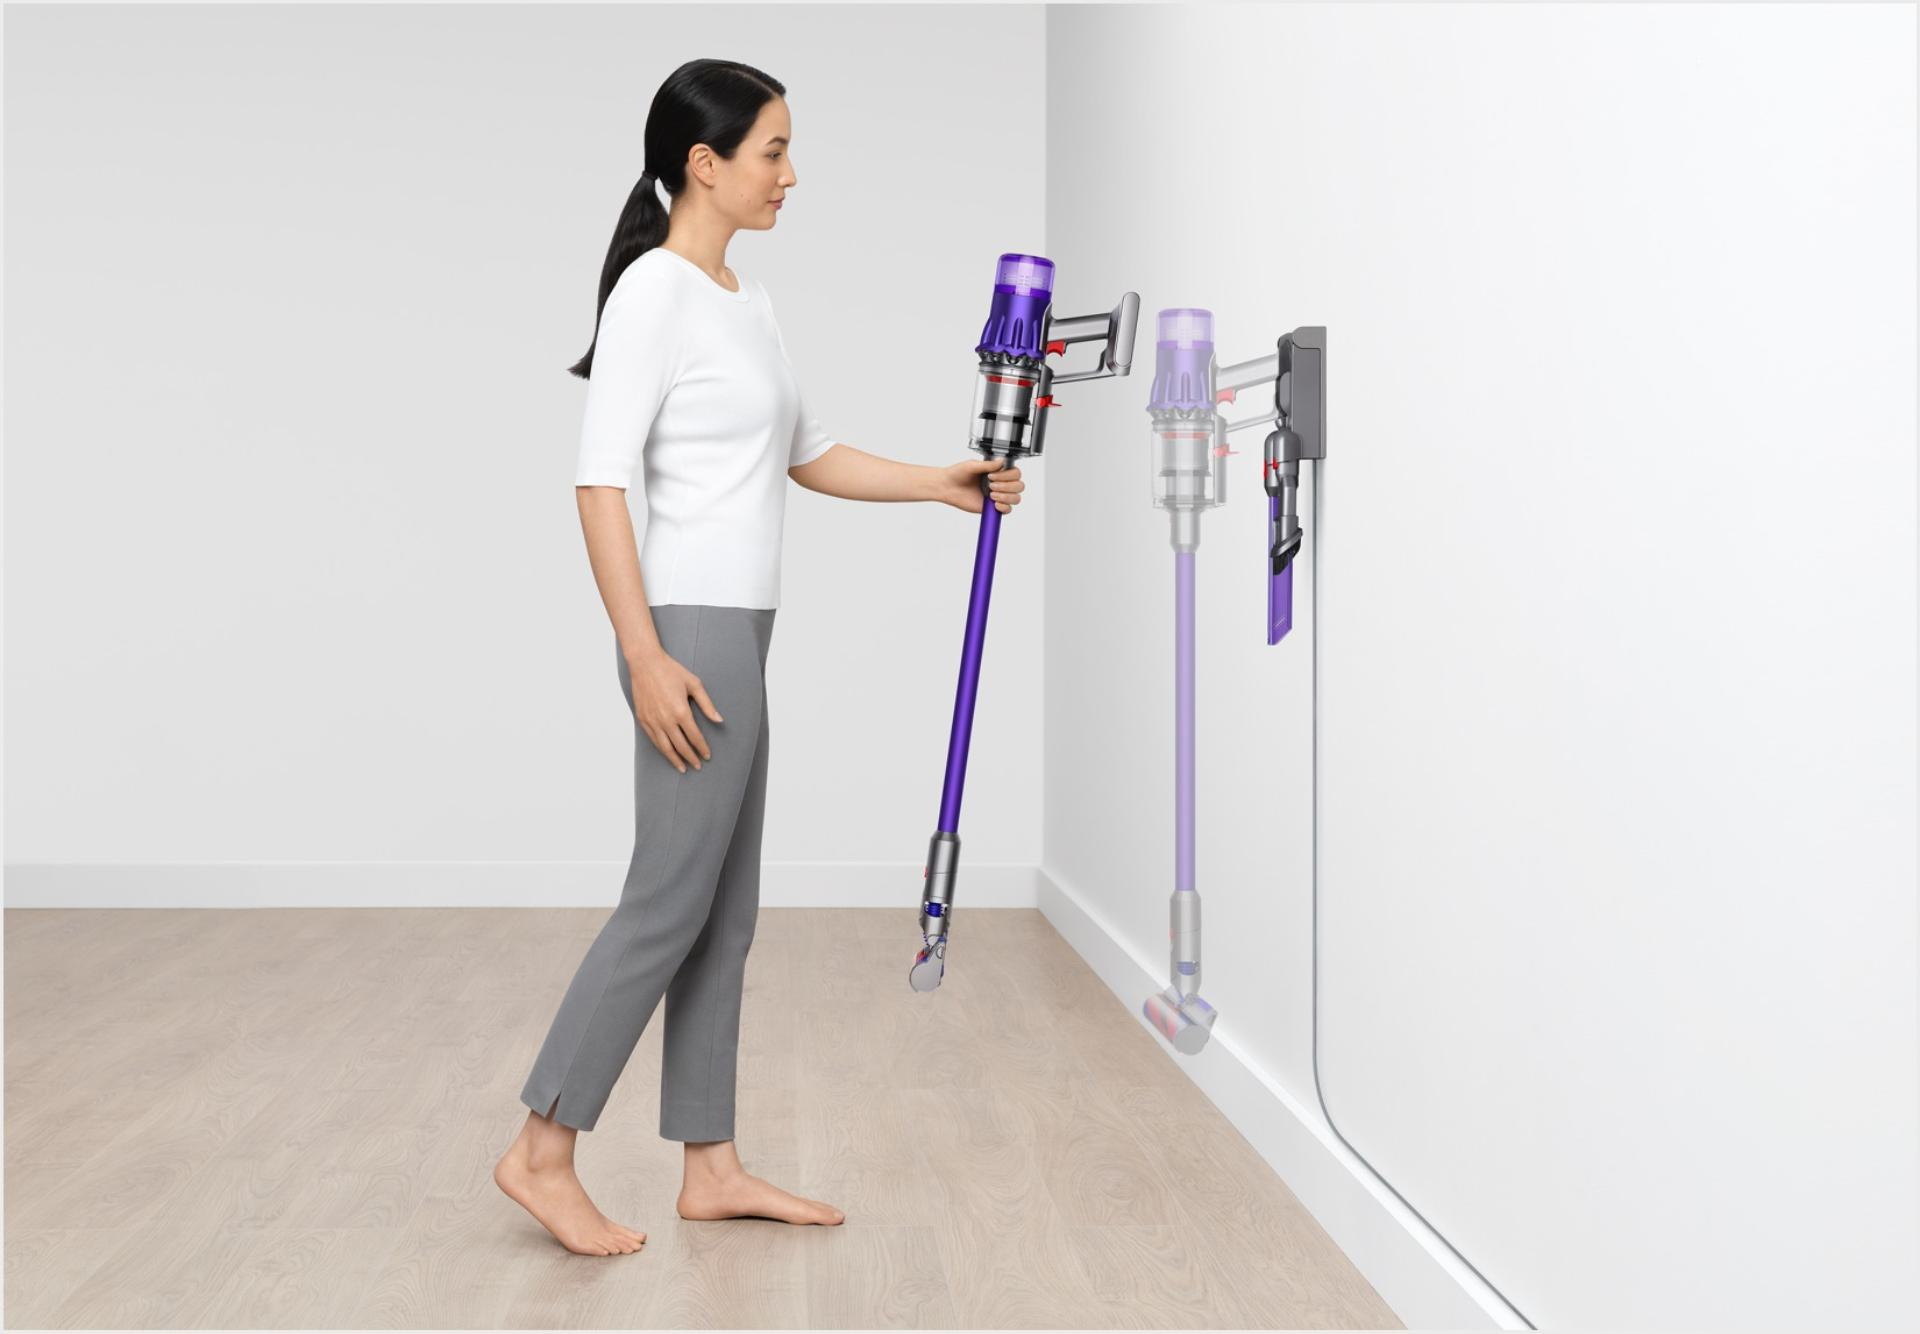 Dyson Digital Slim™ vacuum being placed into wall dock.